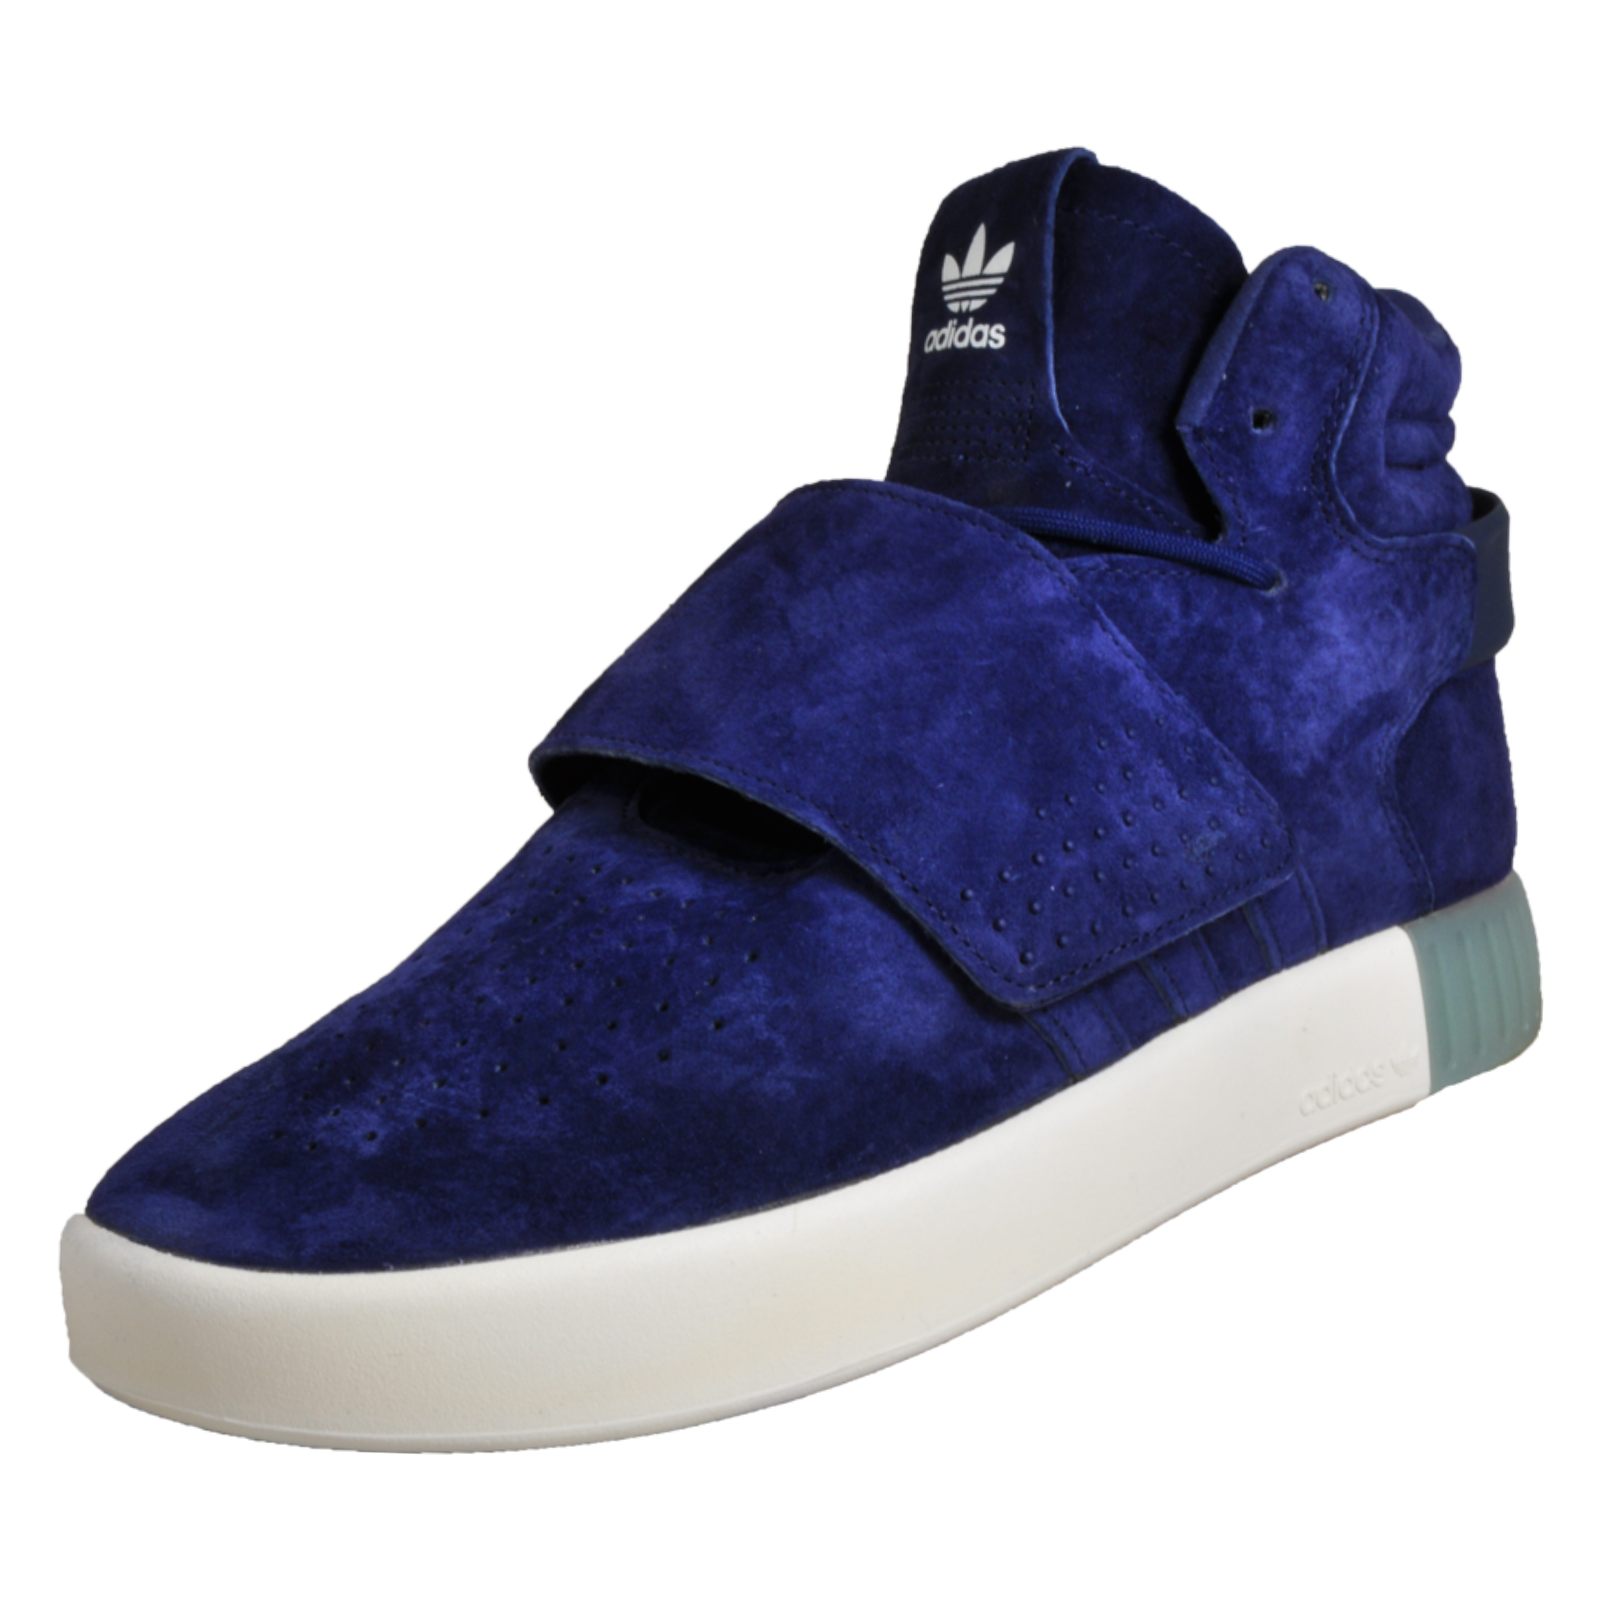 5af9a3e44542f0 Adidas Originals Tubular Invader Men s Suede Leather Mid Top Trainers Blue